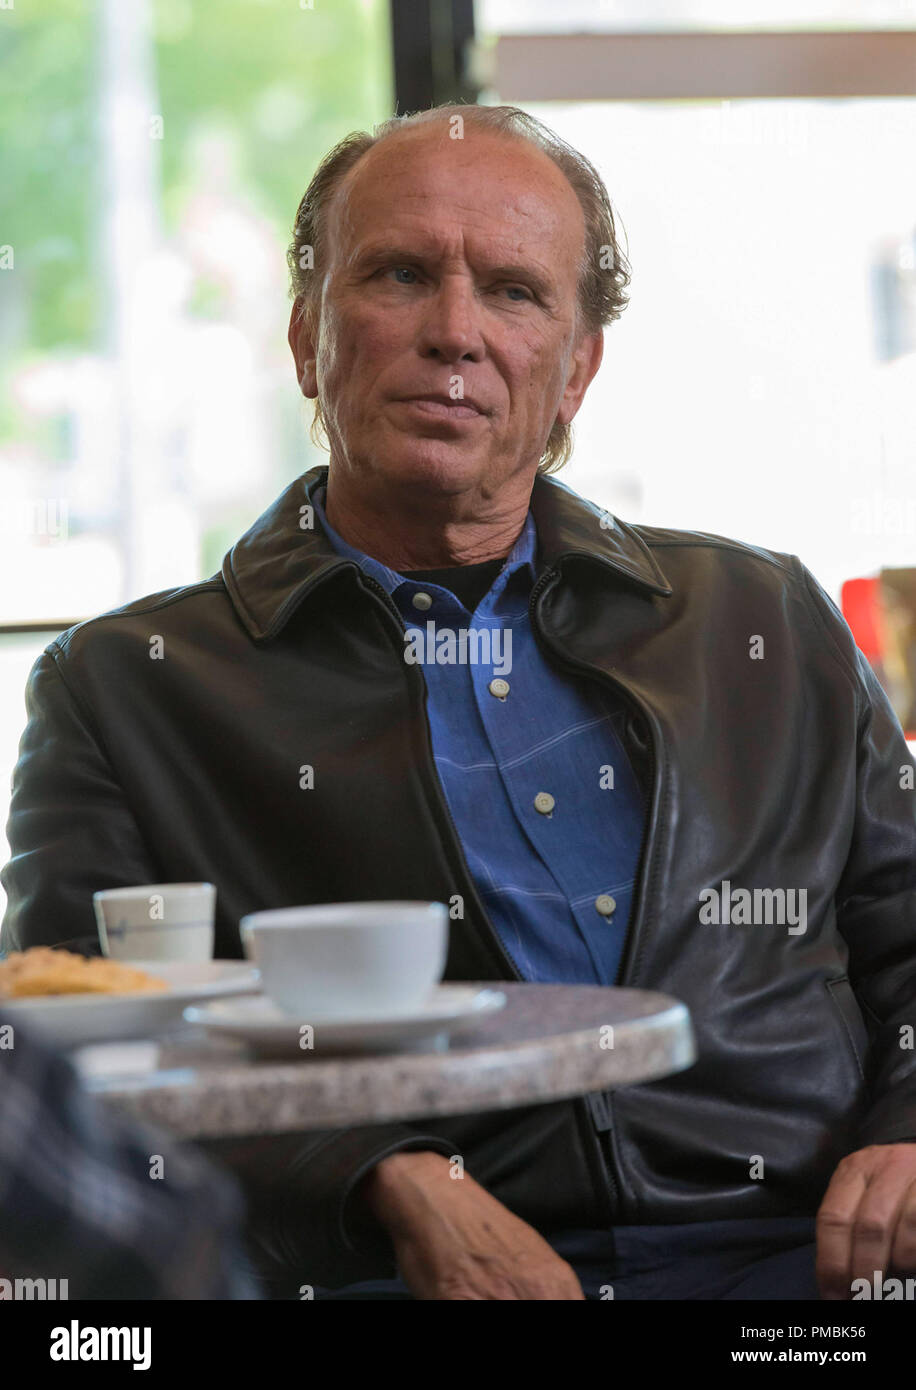 SONS OF ANARCHY Poenitentia -- Episode 603 -- Airs Tuesday, September 24, 10:00 pm e/p) -- Pictured:  Peter Weller as Charles Barosky -- CR: Prashant Gupta/FX - Stock Image